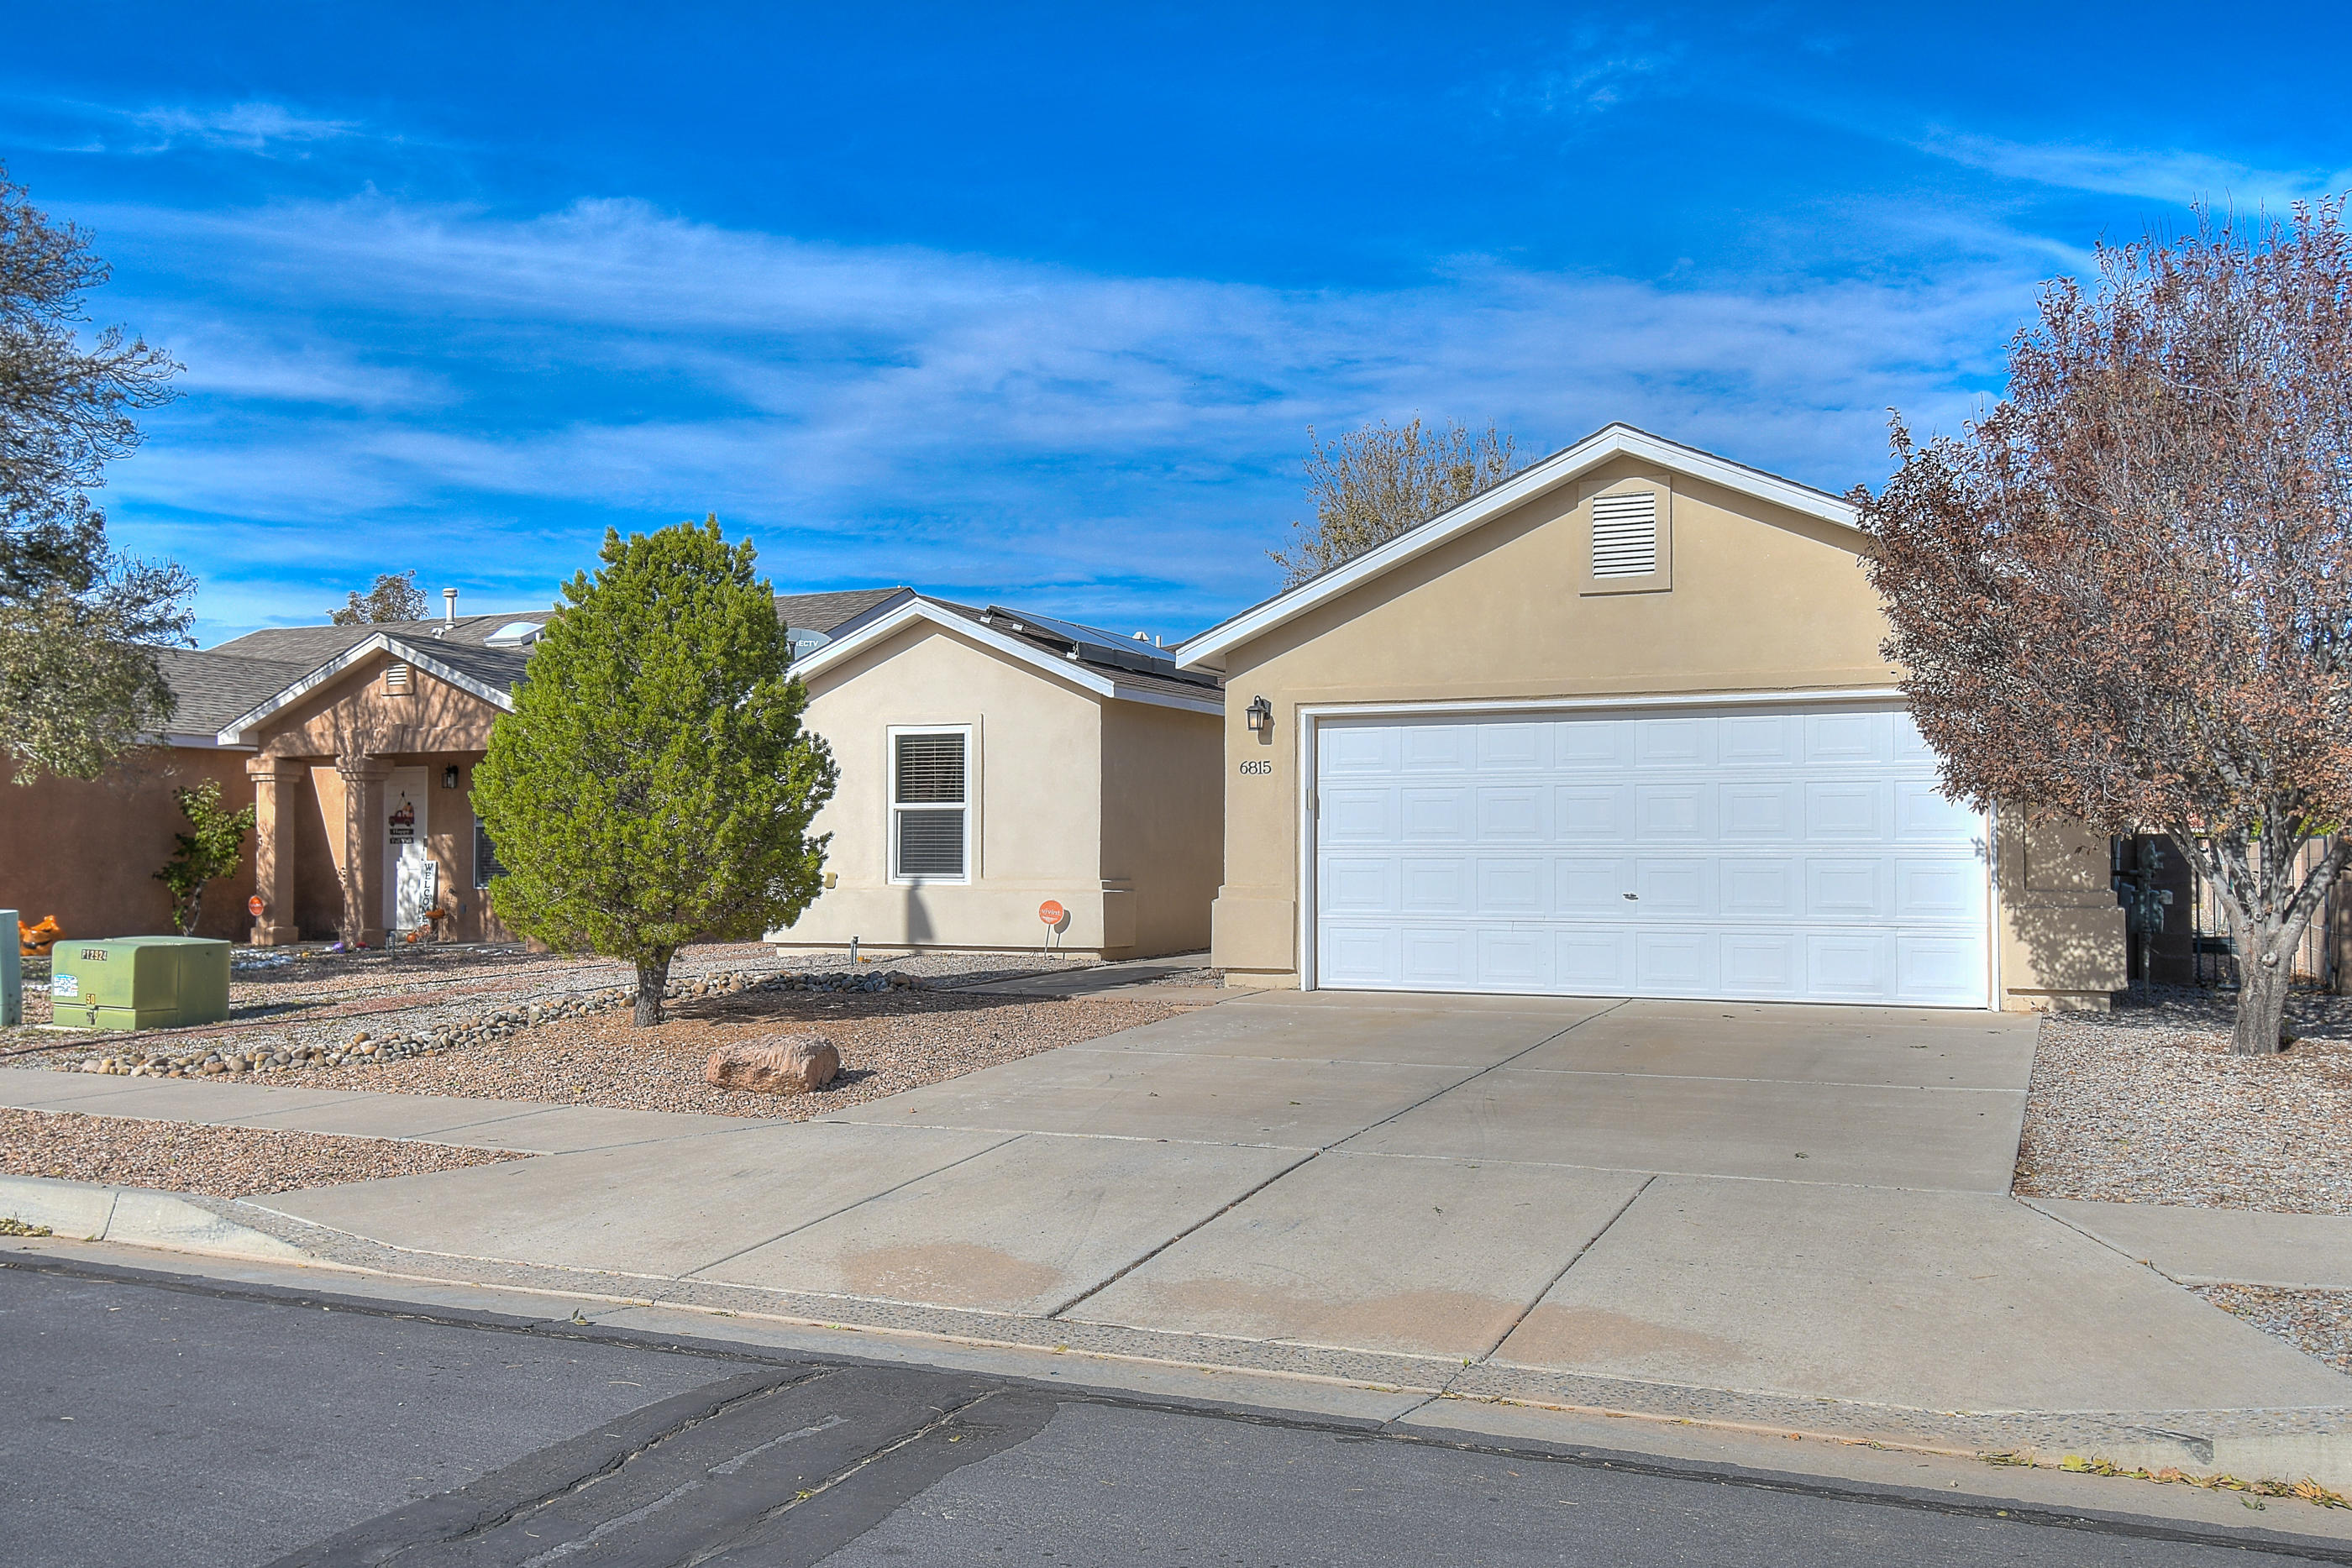 Look no more!! Your next home is waiting for you and this is it. Located in a well established area, close to schools for the kids and fast food restaurants for late snacks. Low maintenance for both the front and backyard.  Come see what can be your new home.